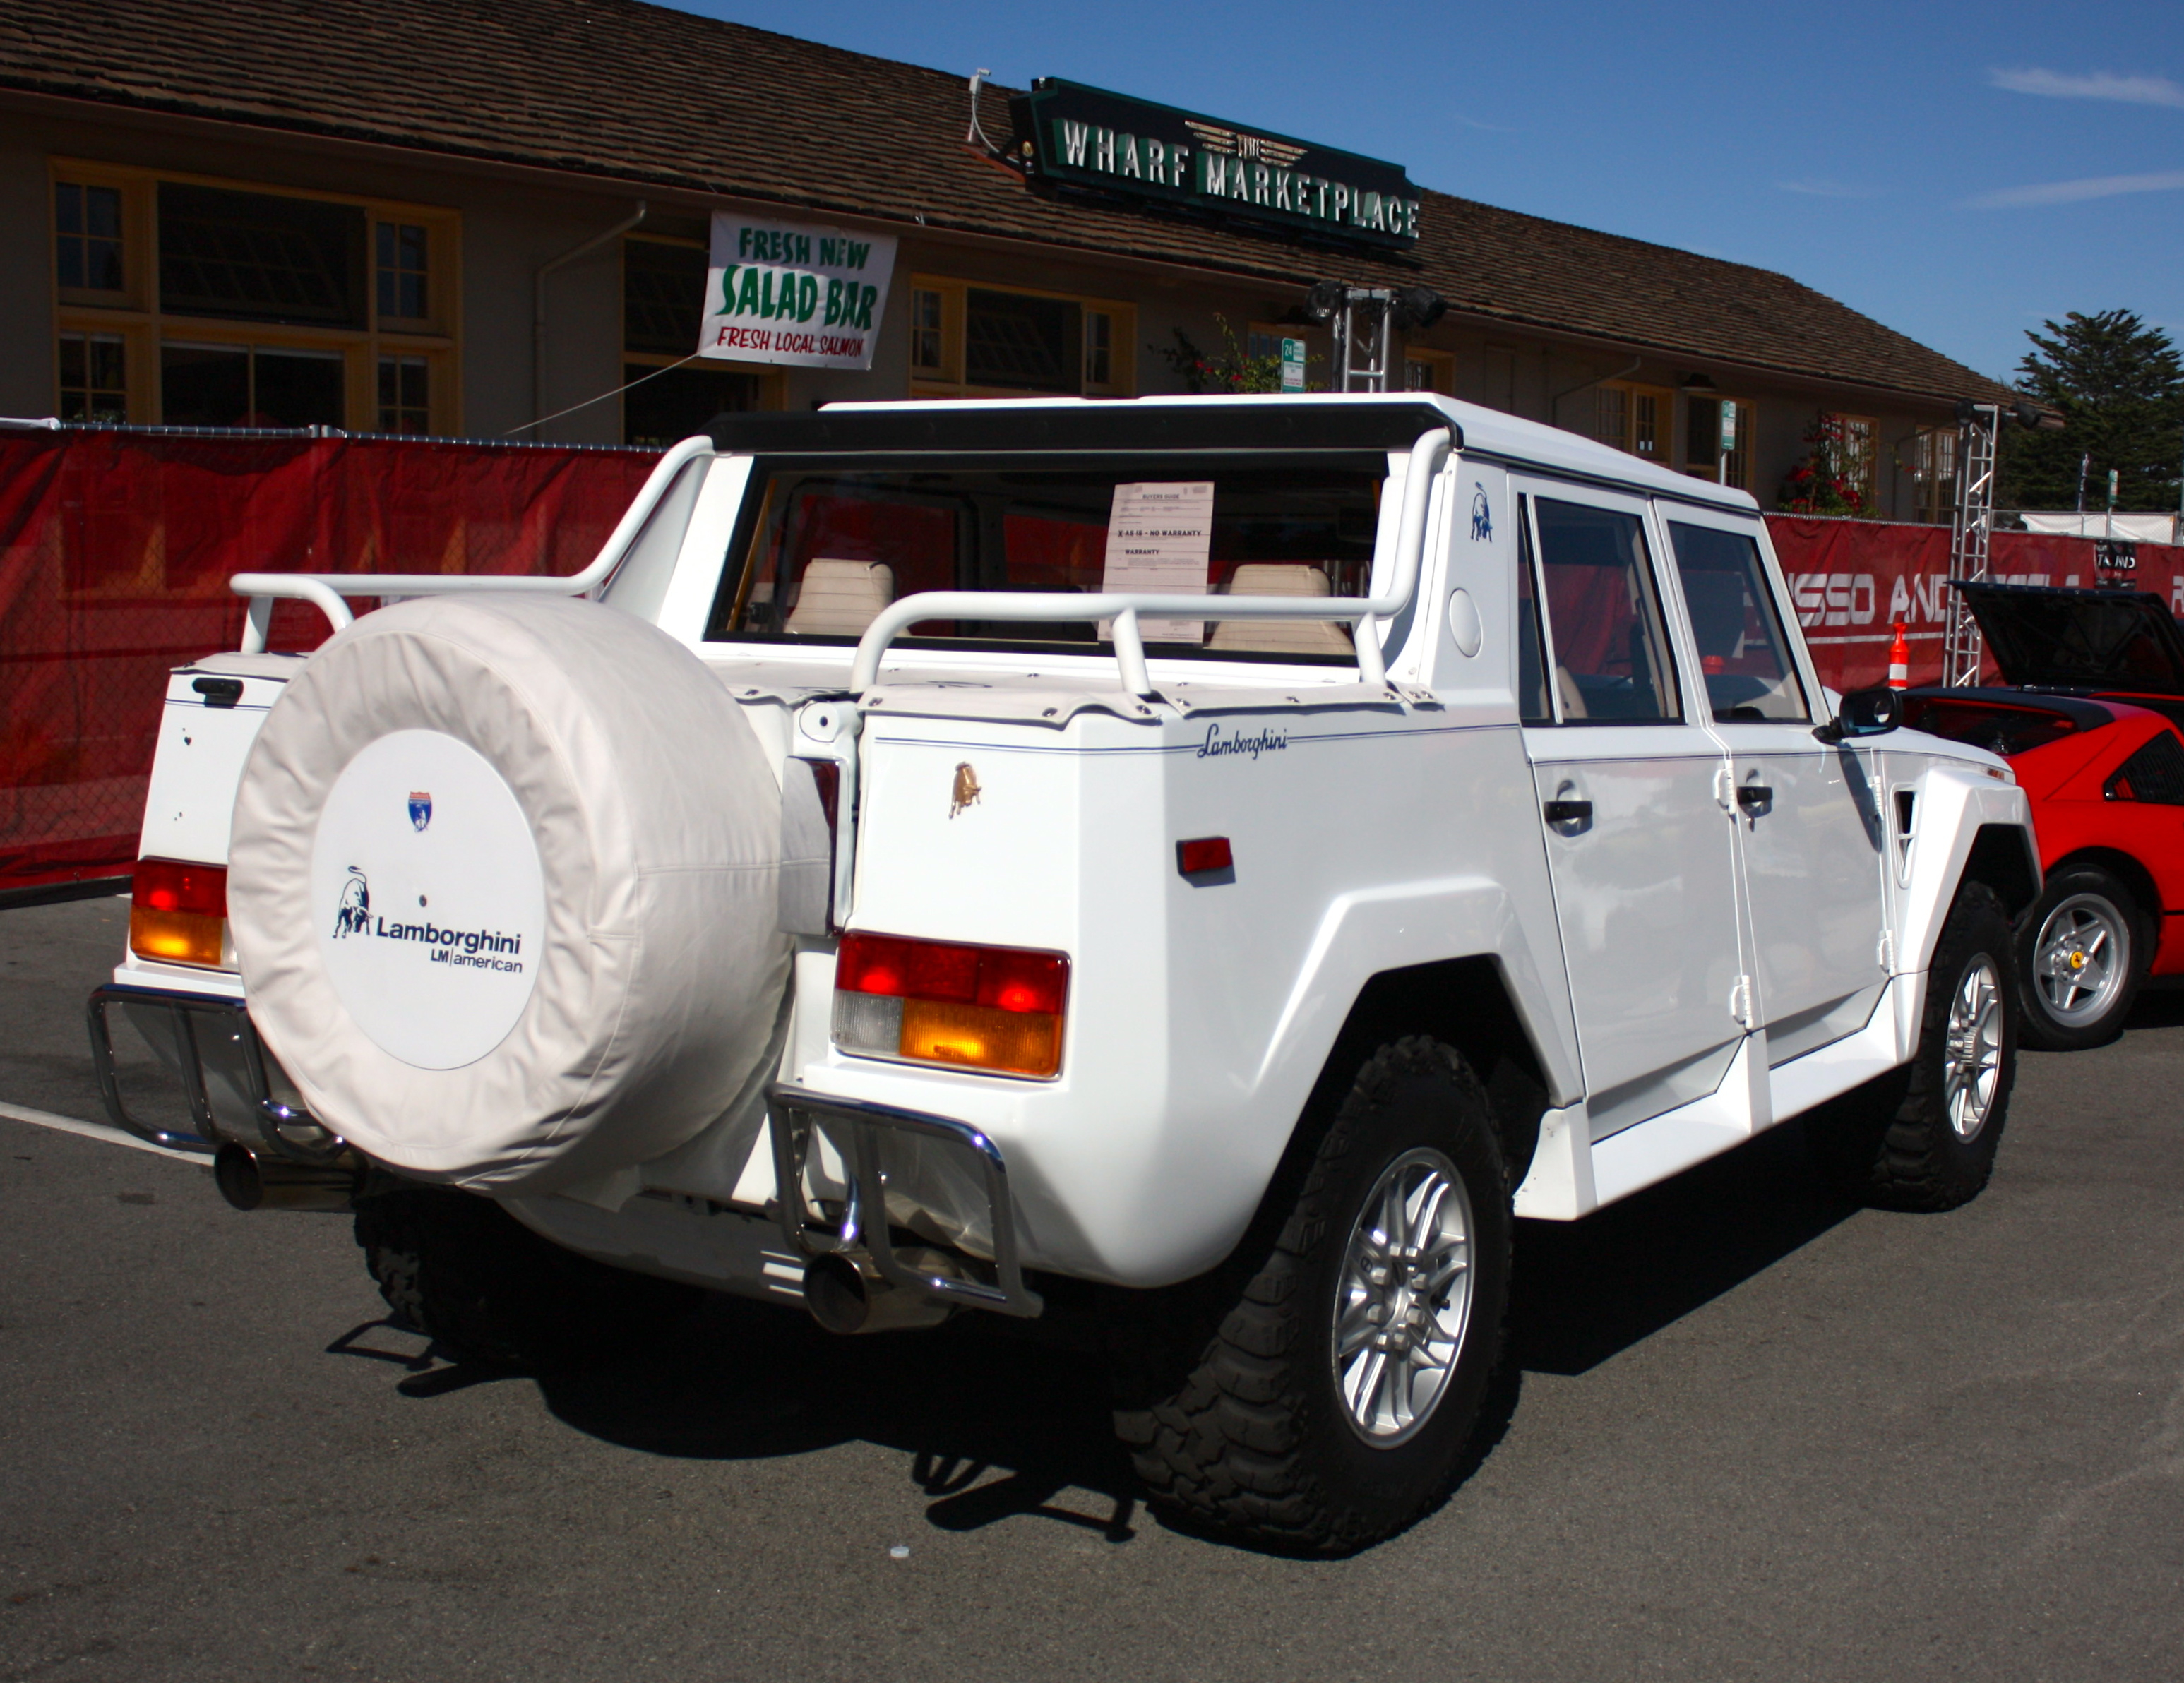 1986 - 1993 Lamborghini LM002 | Top Speed